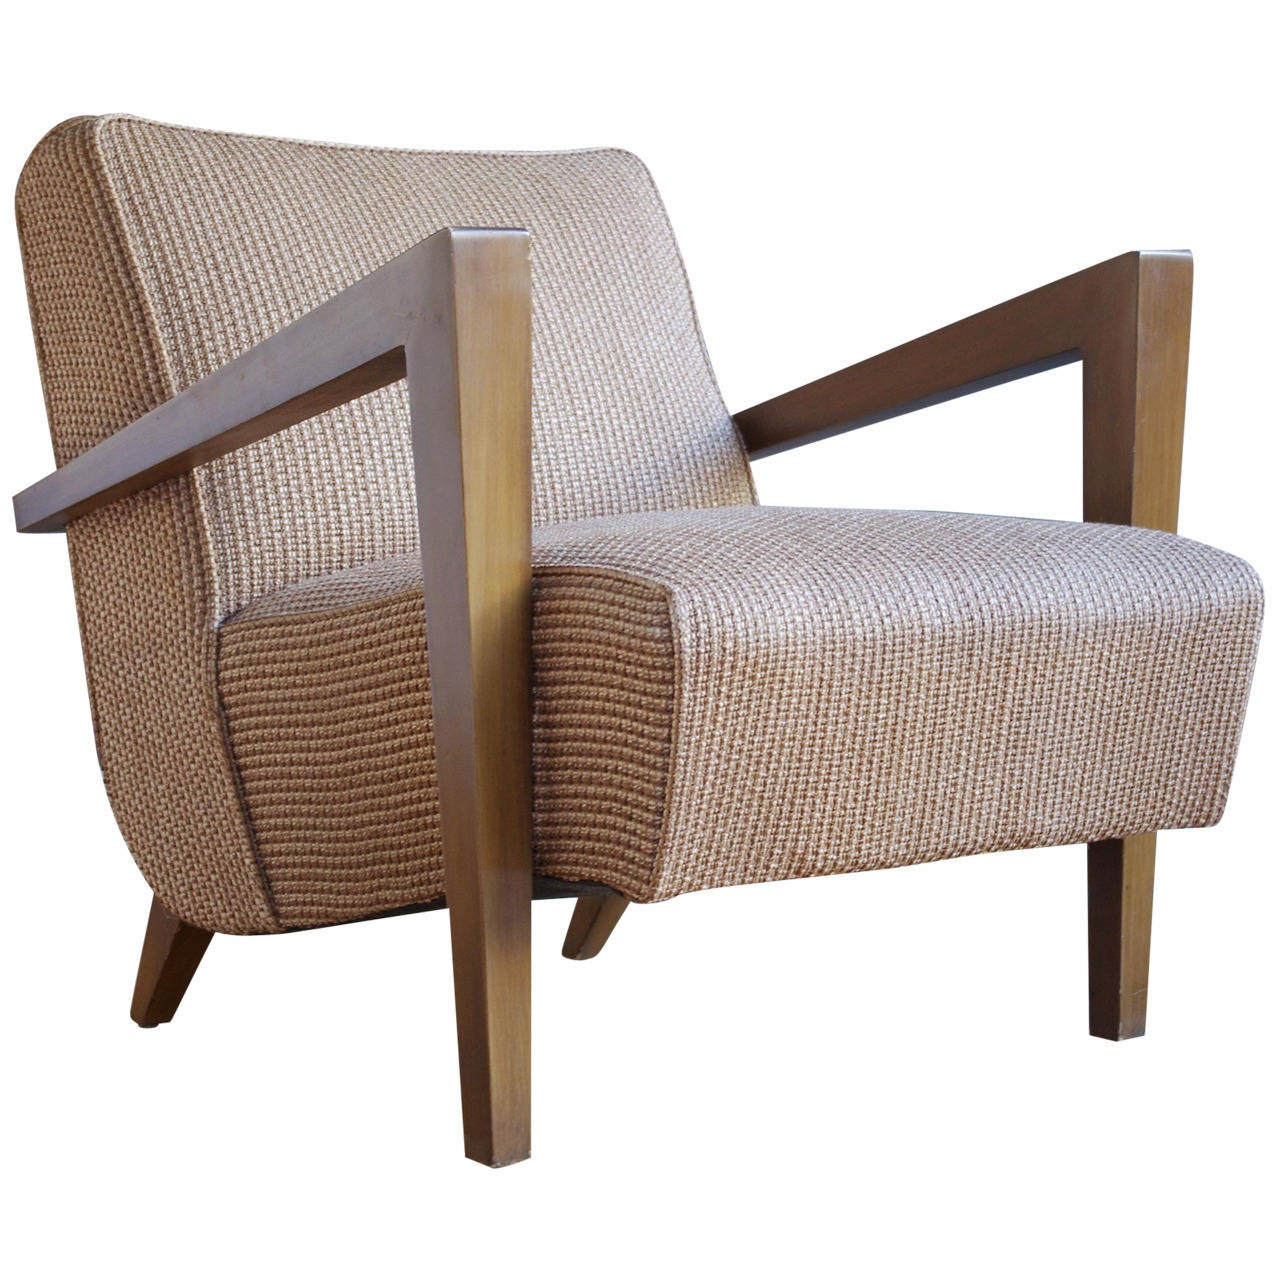 Modern Club Chairs Sculptural Mid Century Modern Lounge Chair At 1stdibs